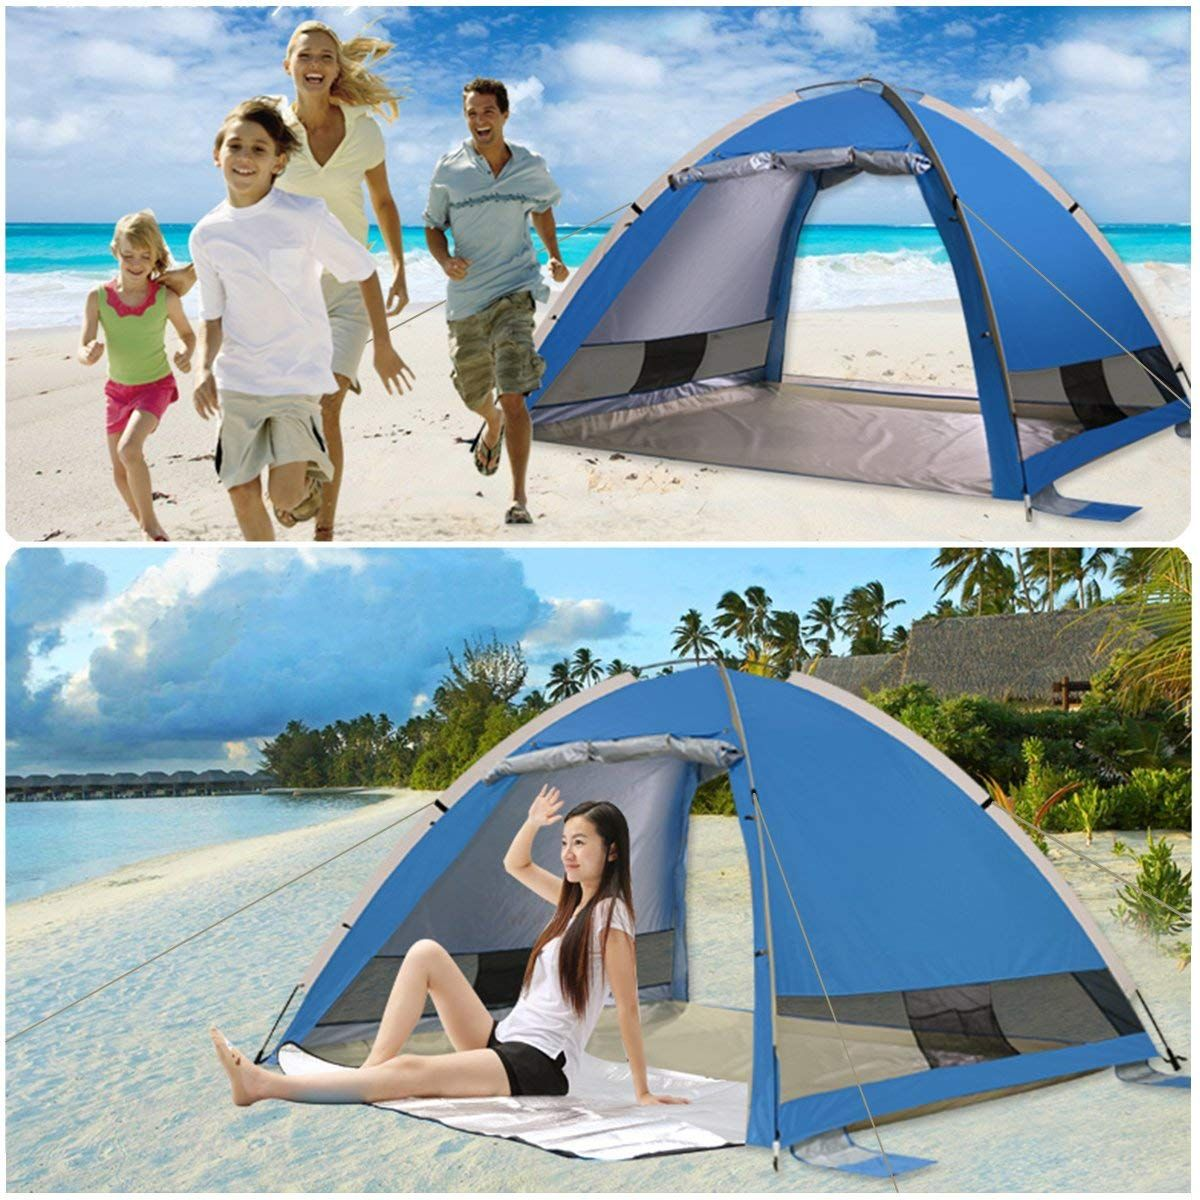 Beach Shelter Tent Pop Up Fishing Waterproof UV 50 Protection Camping Tents Lightweight Portable Sun Shelter for 3-4 People Outdoors Canopy for Backyard Fun or Picnics